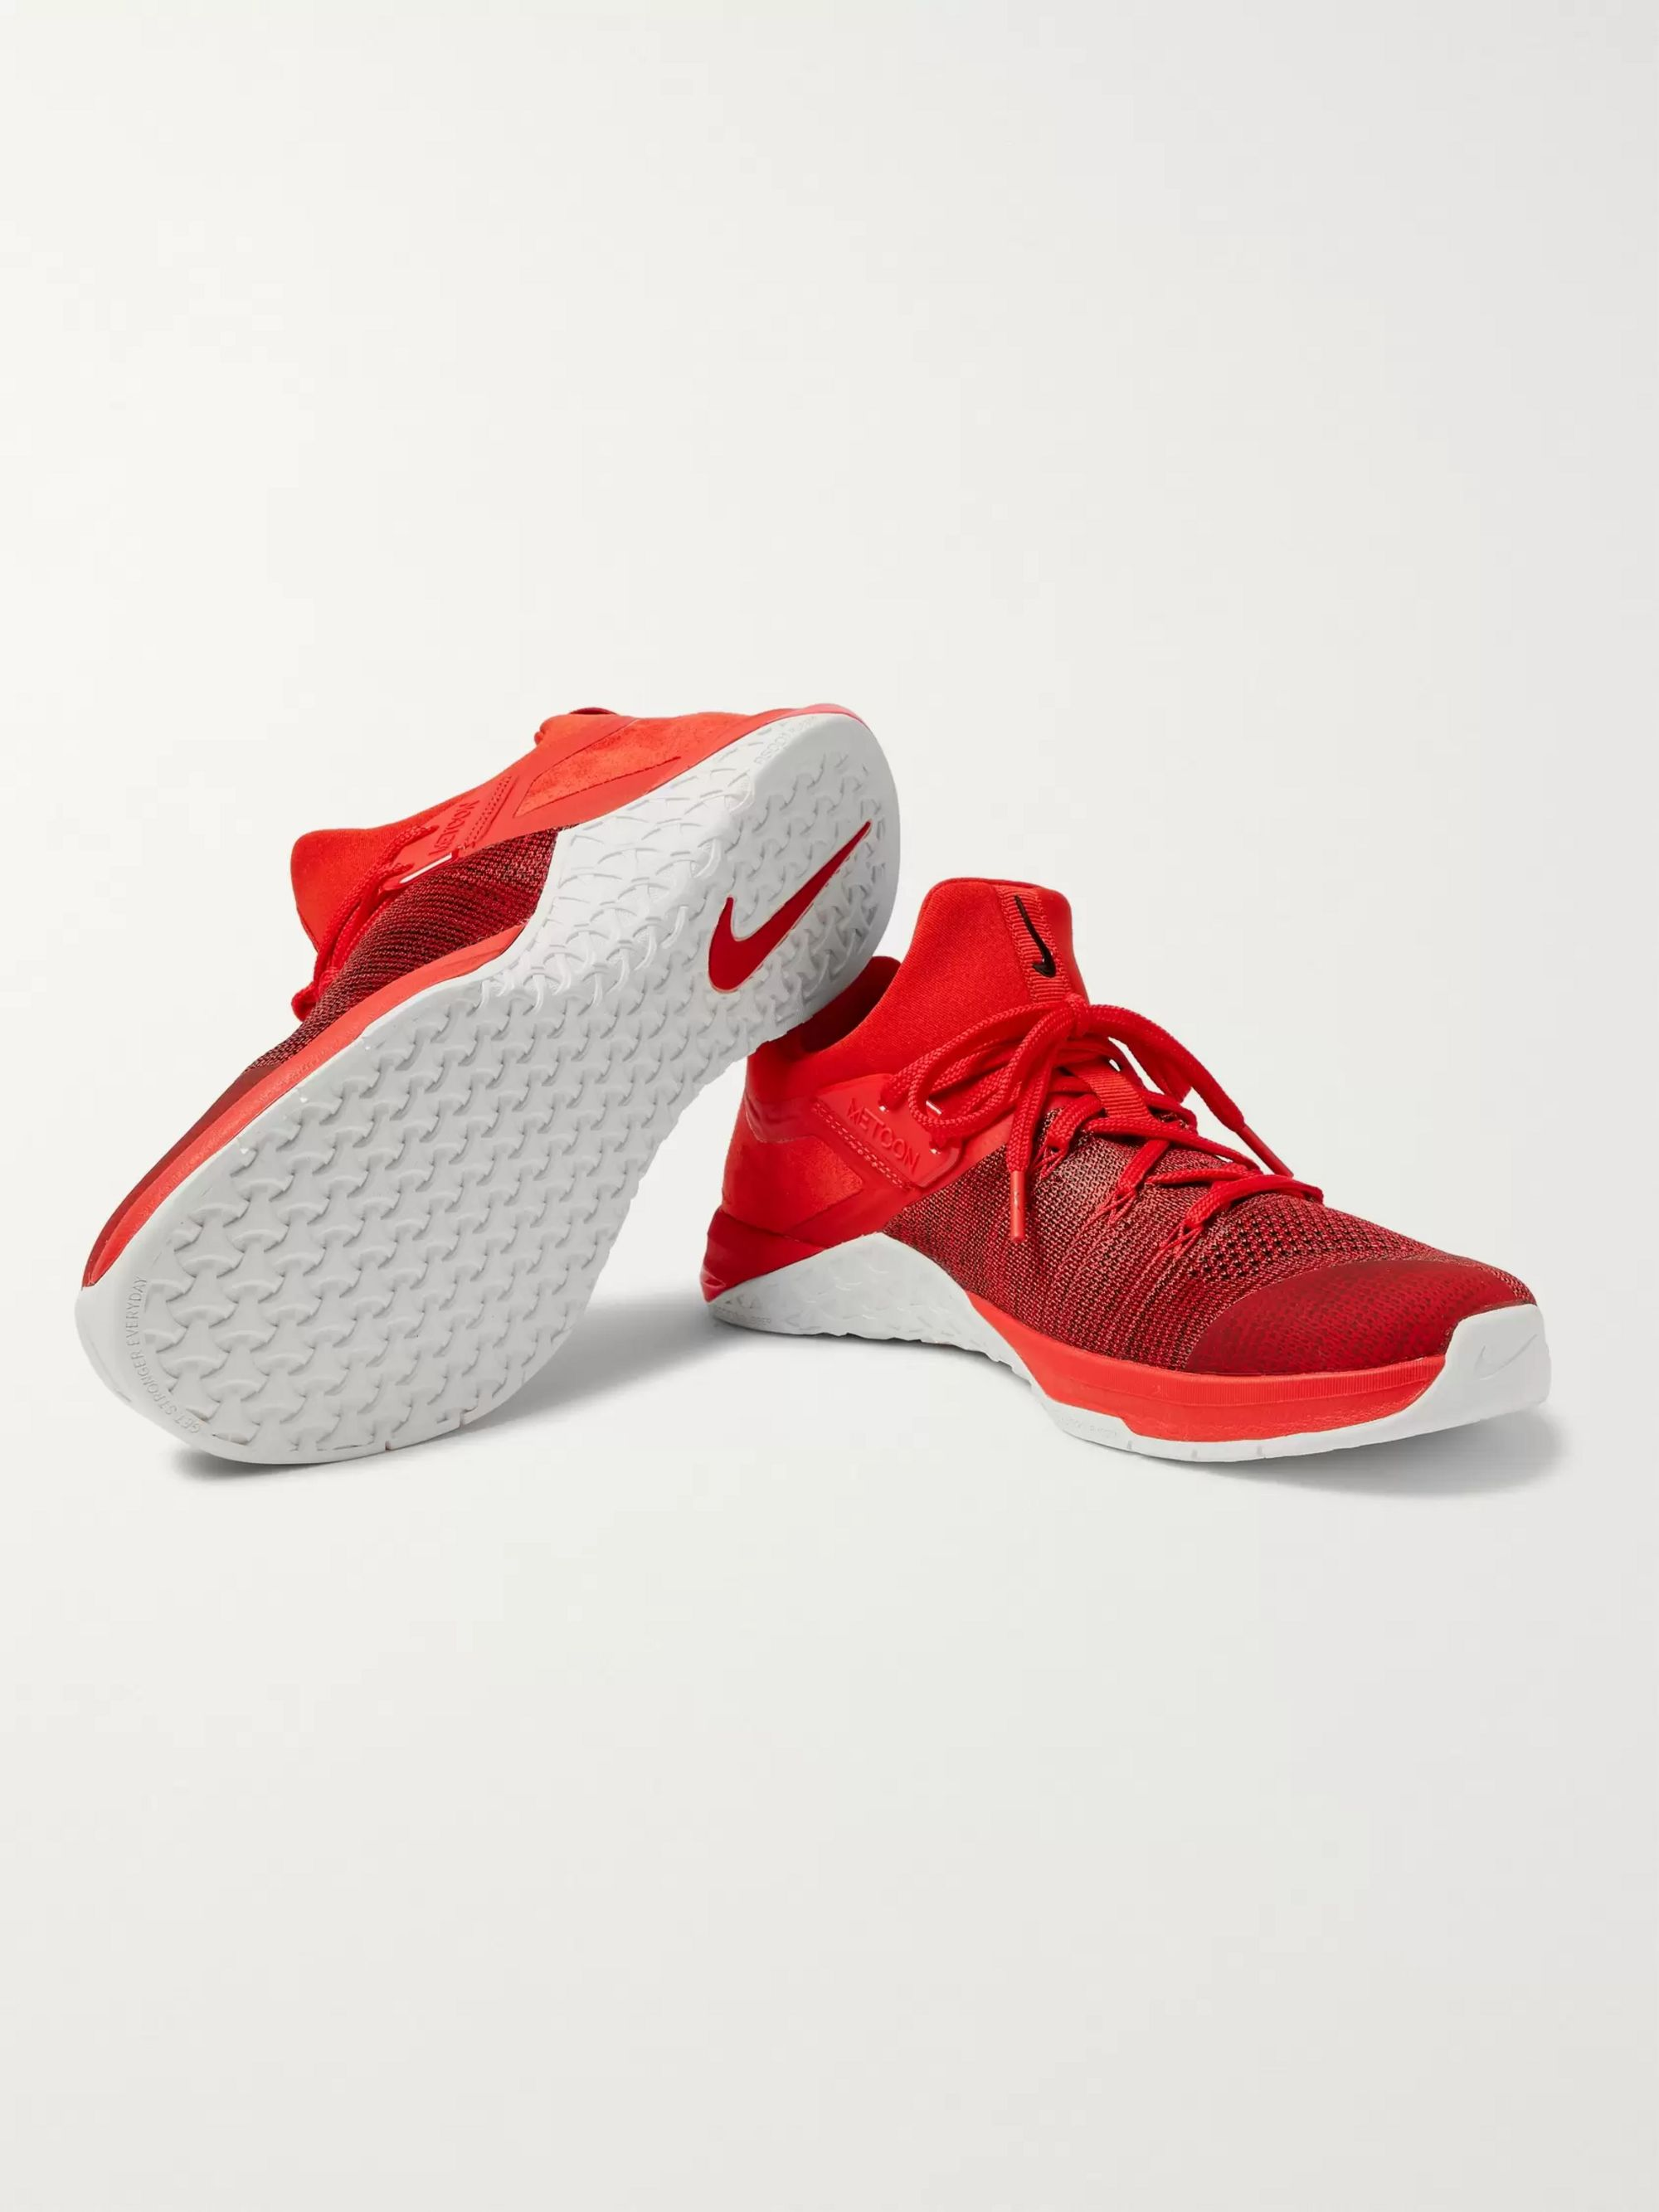 Nike Training Metcon Flyknit 3 Sneakers